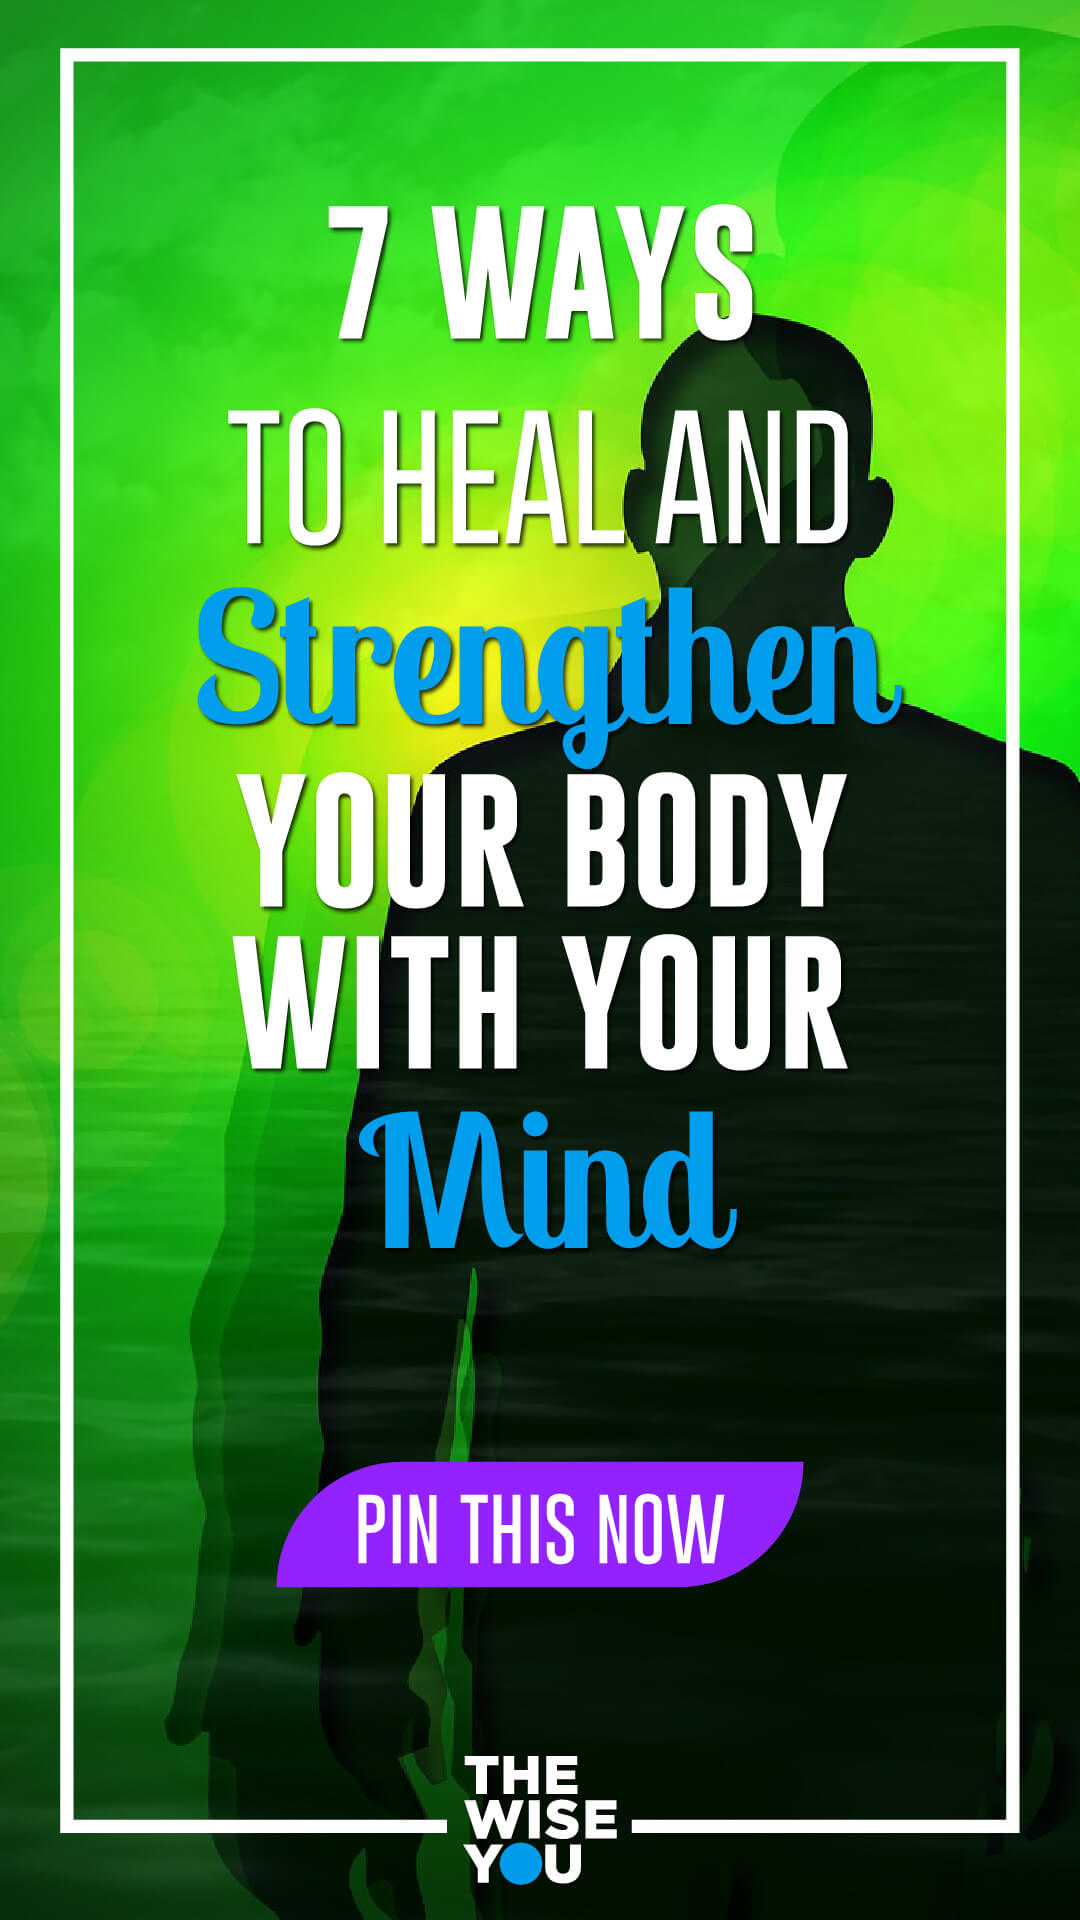 7 Ways to Heal and Strengthen Your Body With Your Mind